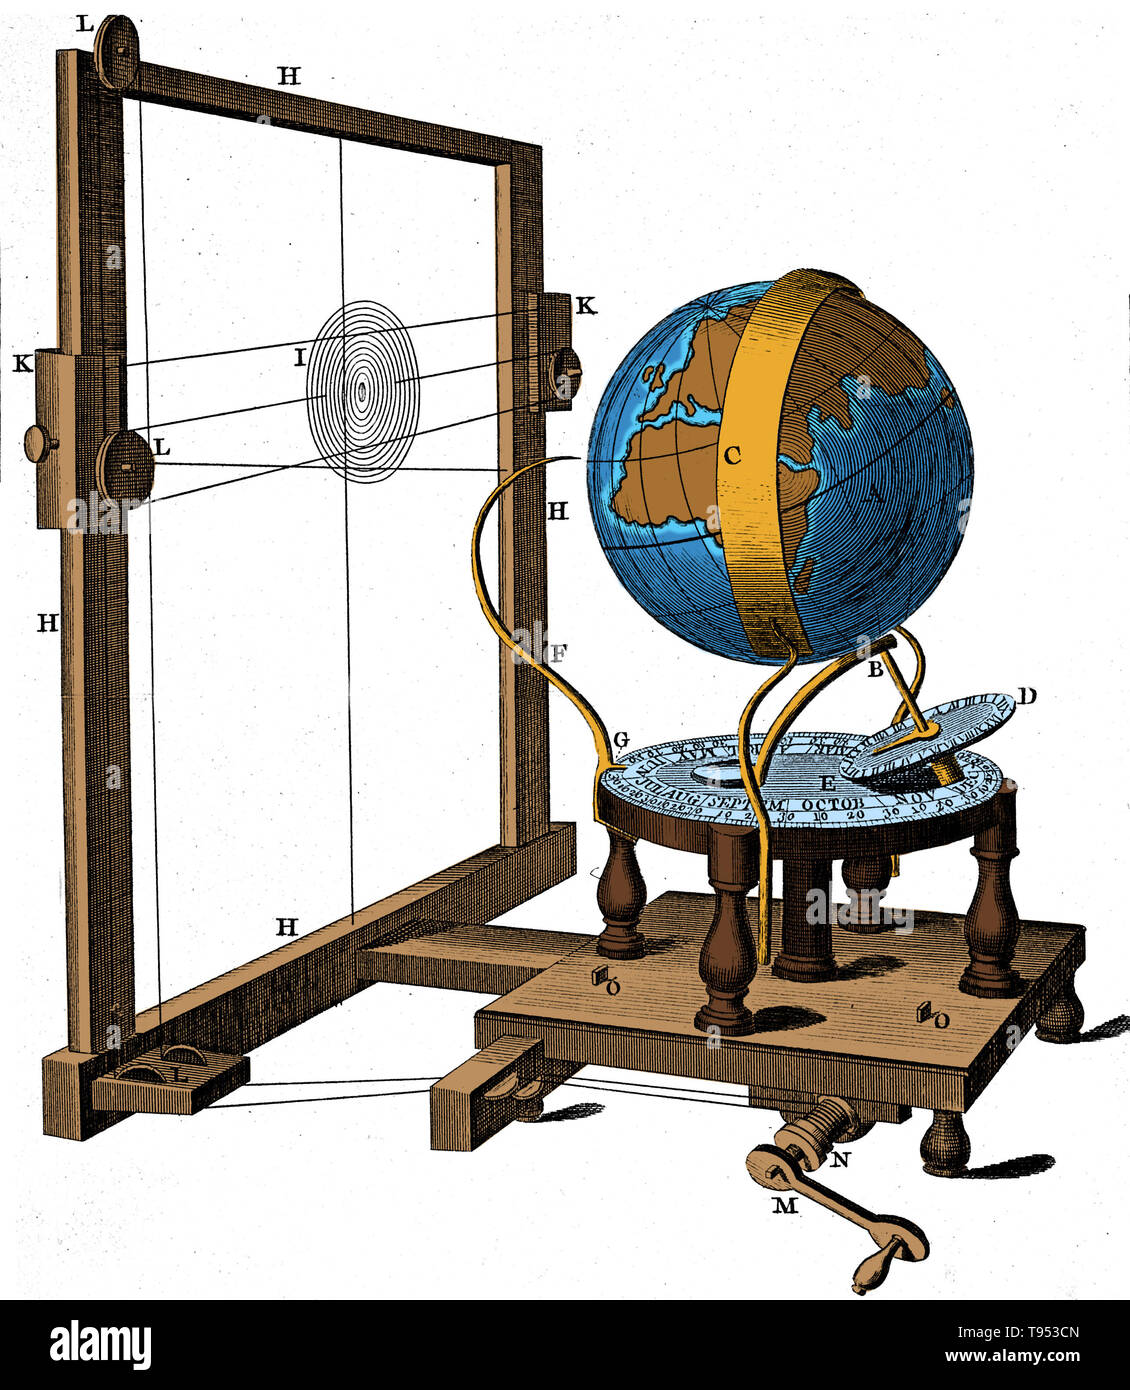 Solar eclipse predictor, c.1750. An illustration showing a mechanism designed to exhibit the time, duration and location of solar eclipses seen from the Earth. This mechanism was designed by the Scottish astronomer James Ferguson (1710-1776). Ferguson was elected a Fellow of the Royal Society in 1763. - Stock Image